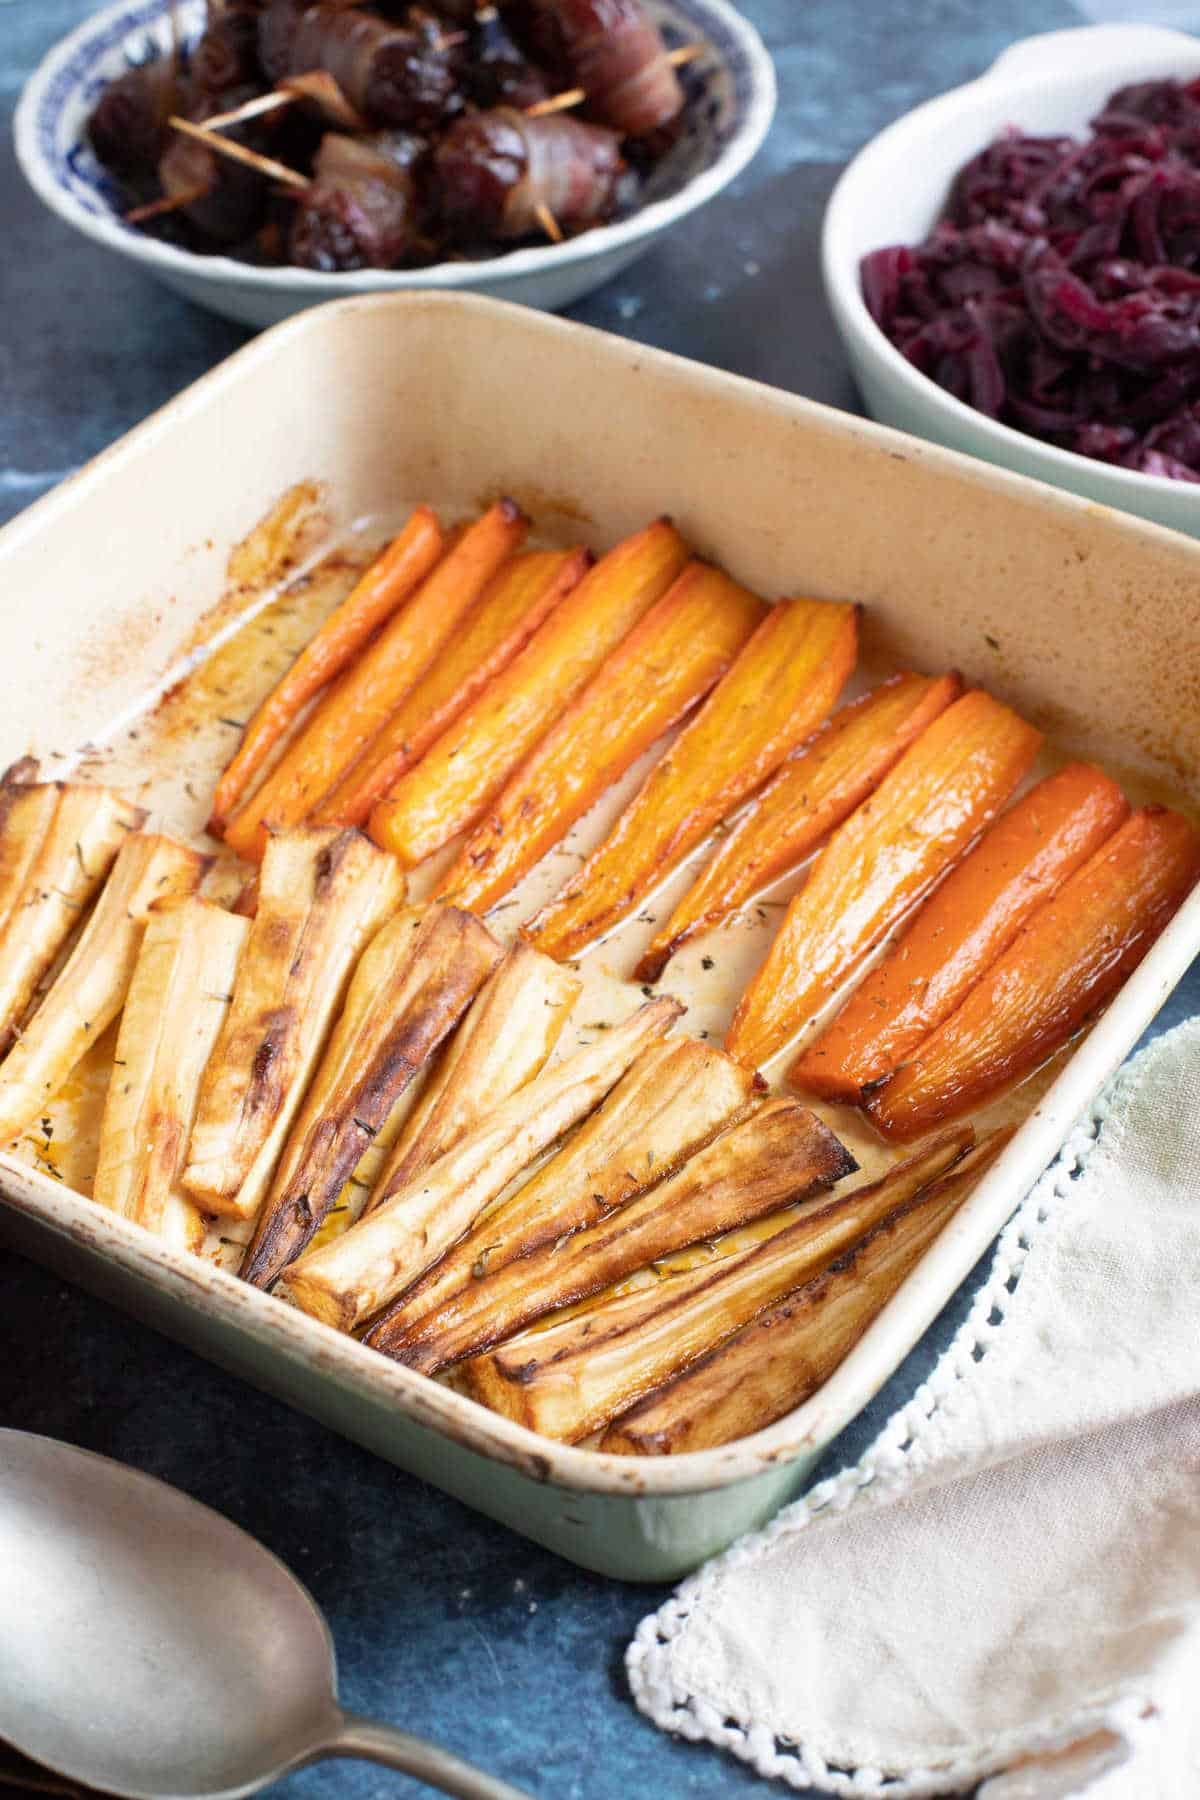 Roasted carrots and parsnips with thyme.